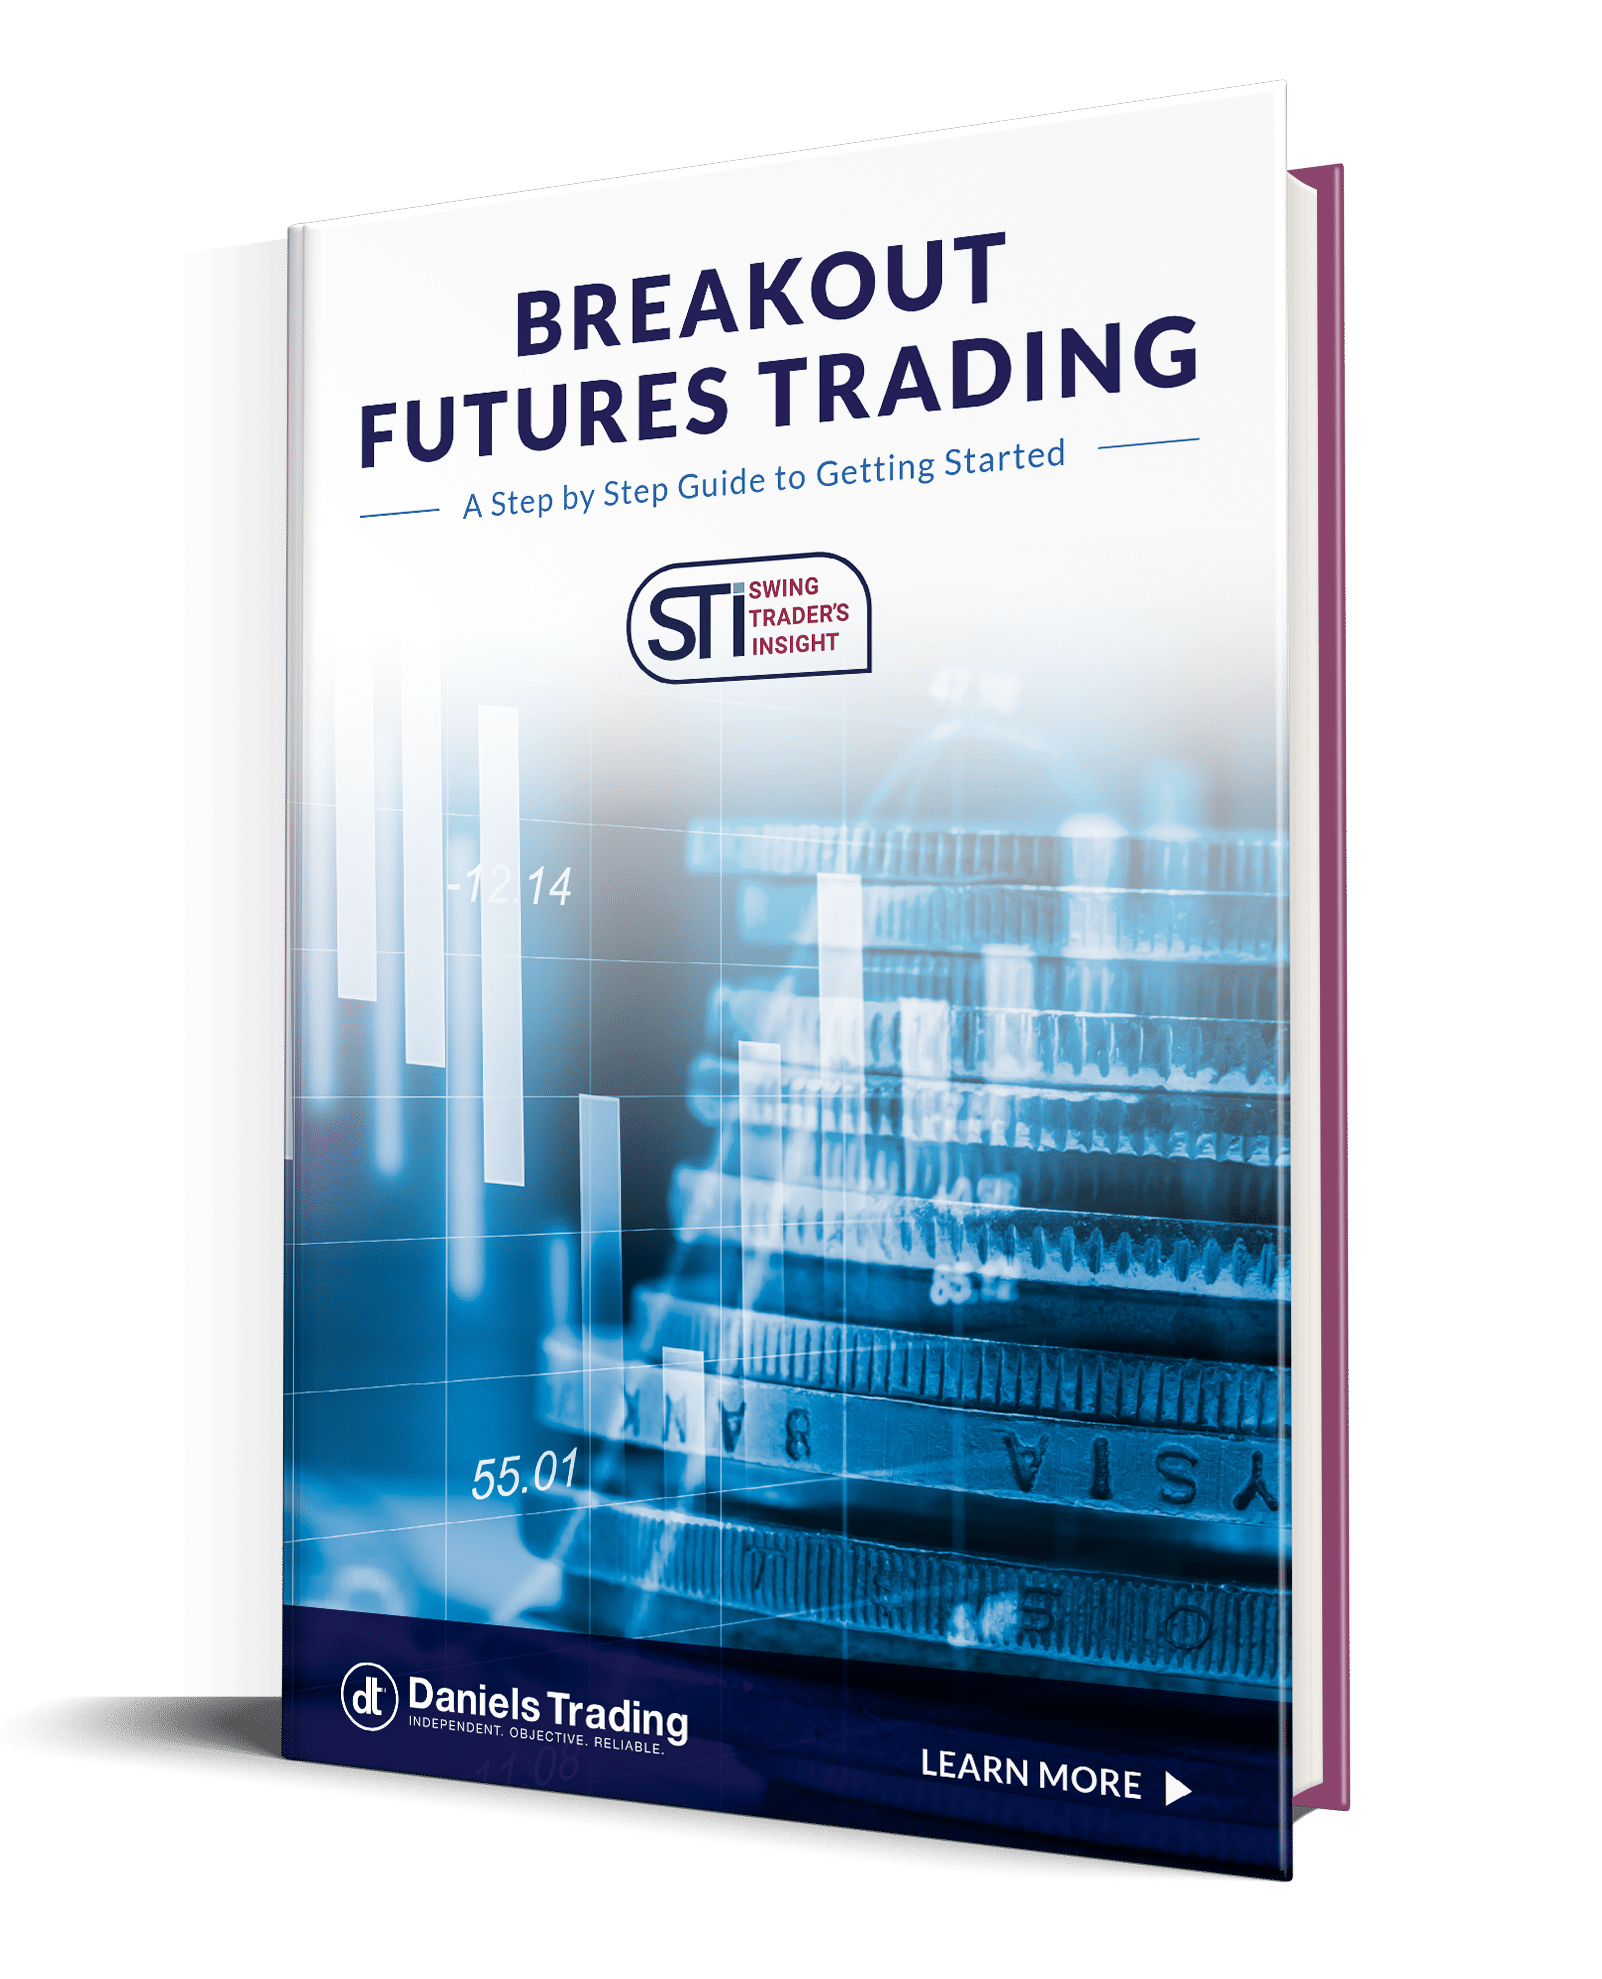 Breakout Futures Trading Guide